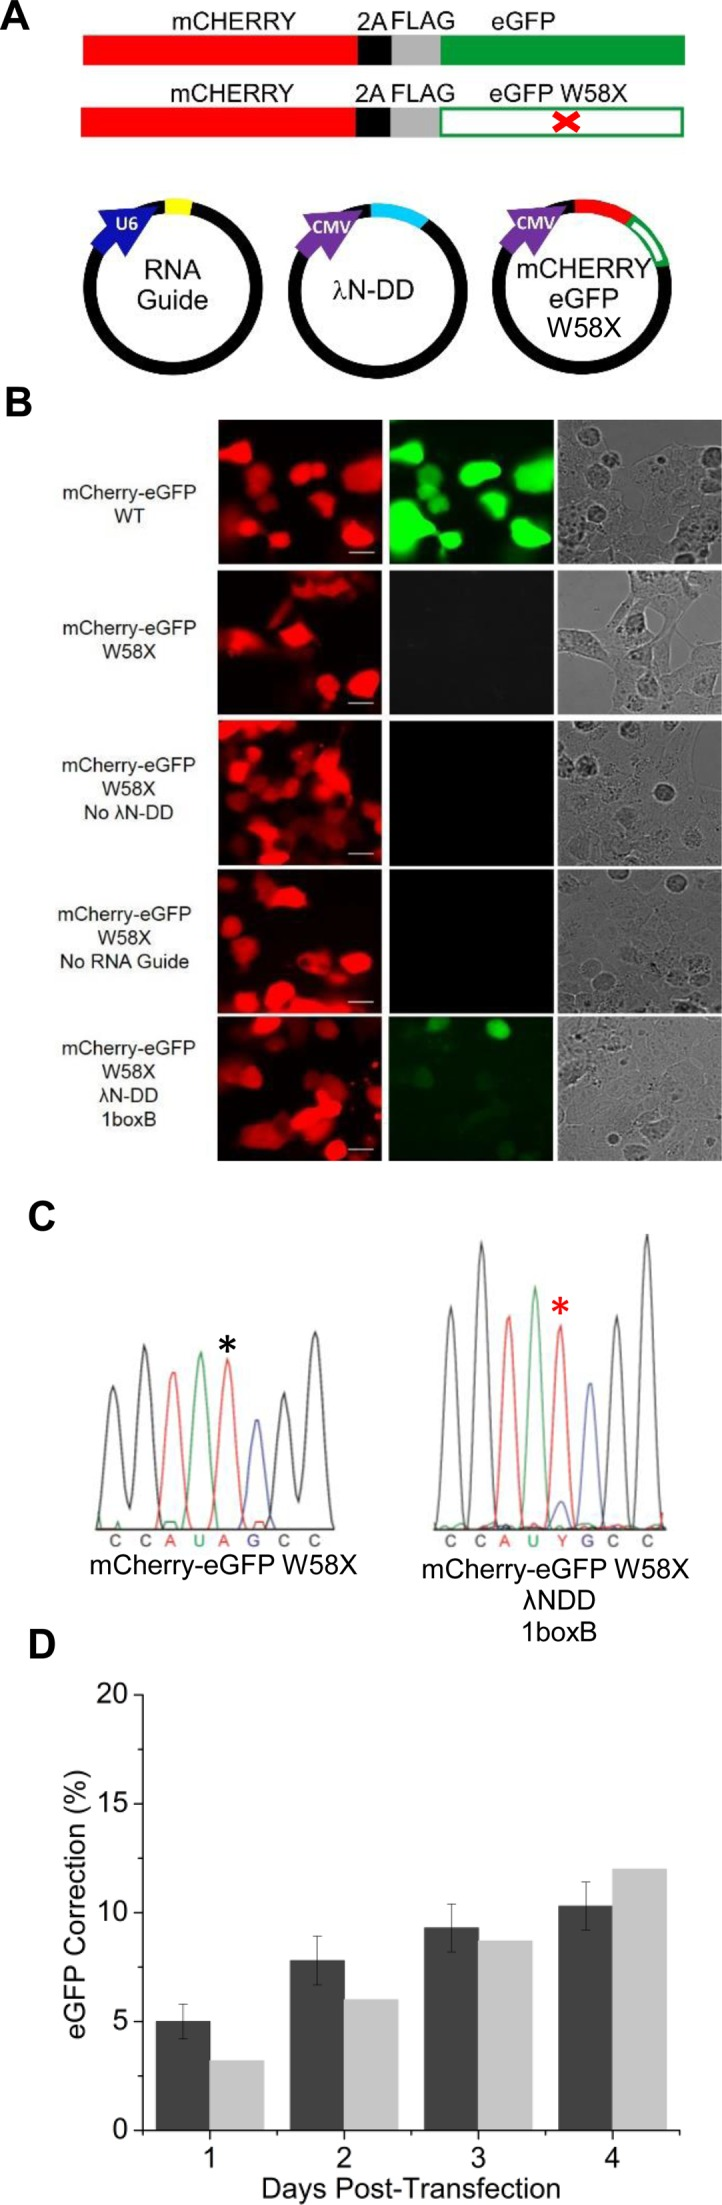 Fluorescent reporter system for quantifying editing. ( A ) Cartoons of fluorescent protein constructs and plasmids used in this study. Full-length mCherry and eGFP were fused together and separated by a 2A peptide (black) followed by a FLAG epitope tag (grey). In addition, a version with a stop codon (U A G) inserted at position 58 of eGFP was made (W58X). These constructs were cloned into a vector driven by the CMV promoter, as was λN-DD. RNA guides were driven by a U6 promoter. ( B ) Confocal images of HEK293T cells transfected with different combinations of components are shown. Red, green, and DIC images are shown for the same field of cells. Pictures are taken 96 h post-transfection. Scale bars = 12 μm. Fluorescence correction was estimated to be 11 ± 0.05 %. ( C ) Sequences from RT-PCR products of corrected cells and cells transfected with mCherry-eGFP W58X alone. Asterisks indicate the target A. Editing percentage for experimental samples was estimated to be 11 %. ( D ) Estimates of editing efficiencies from fluorescence (dark gray) and direct sequencing (light grey) were compared at various days post-transfection. Fluorescence estimates were based on 200–800 cells per sample (mean ± SEM) and RT-PCR products came from the same samples. Technical duplicates for all fluorescence measurements yielded similar results (2.3 ± 0.3, 8.7 ± 1.5, 8.9 ± 1.5, and 12.9 ± 1.4 % for days 1, 2, 3, and 4, respectively). Technical duplicates for RNA correction based on direct sequencing of were as follows: 4, 6, 9 and 14 %, for days 1, 2, 3 and 4, respectively.